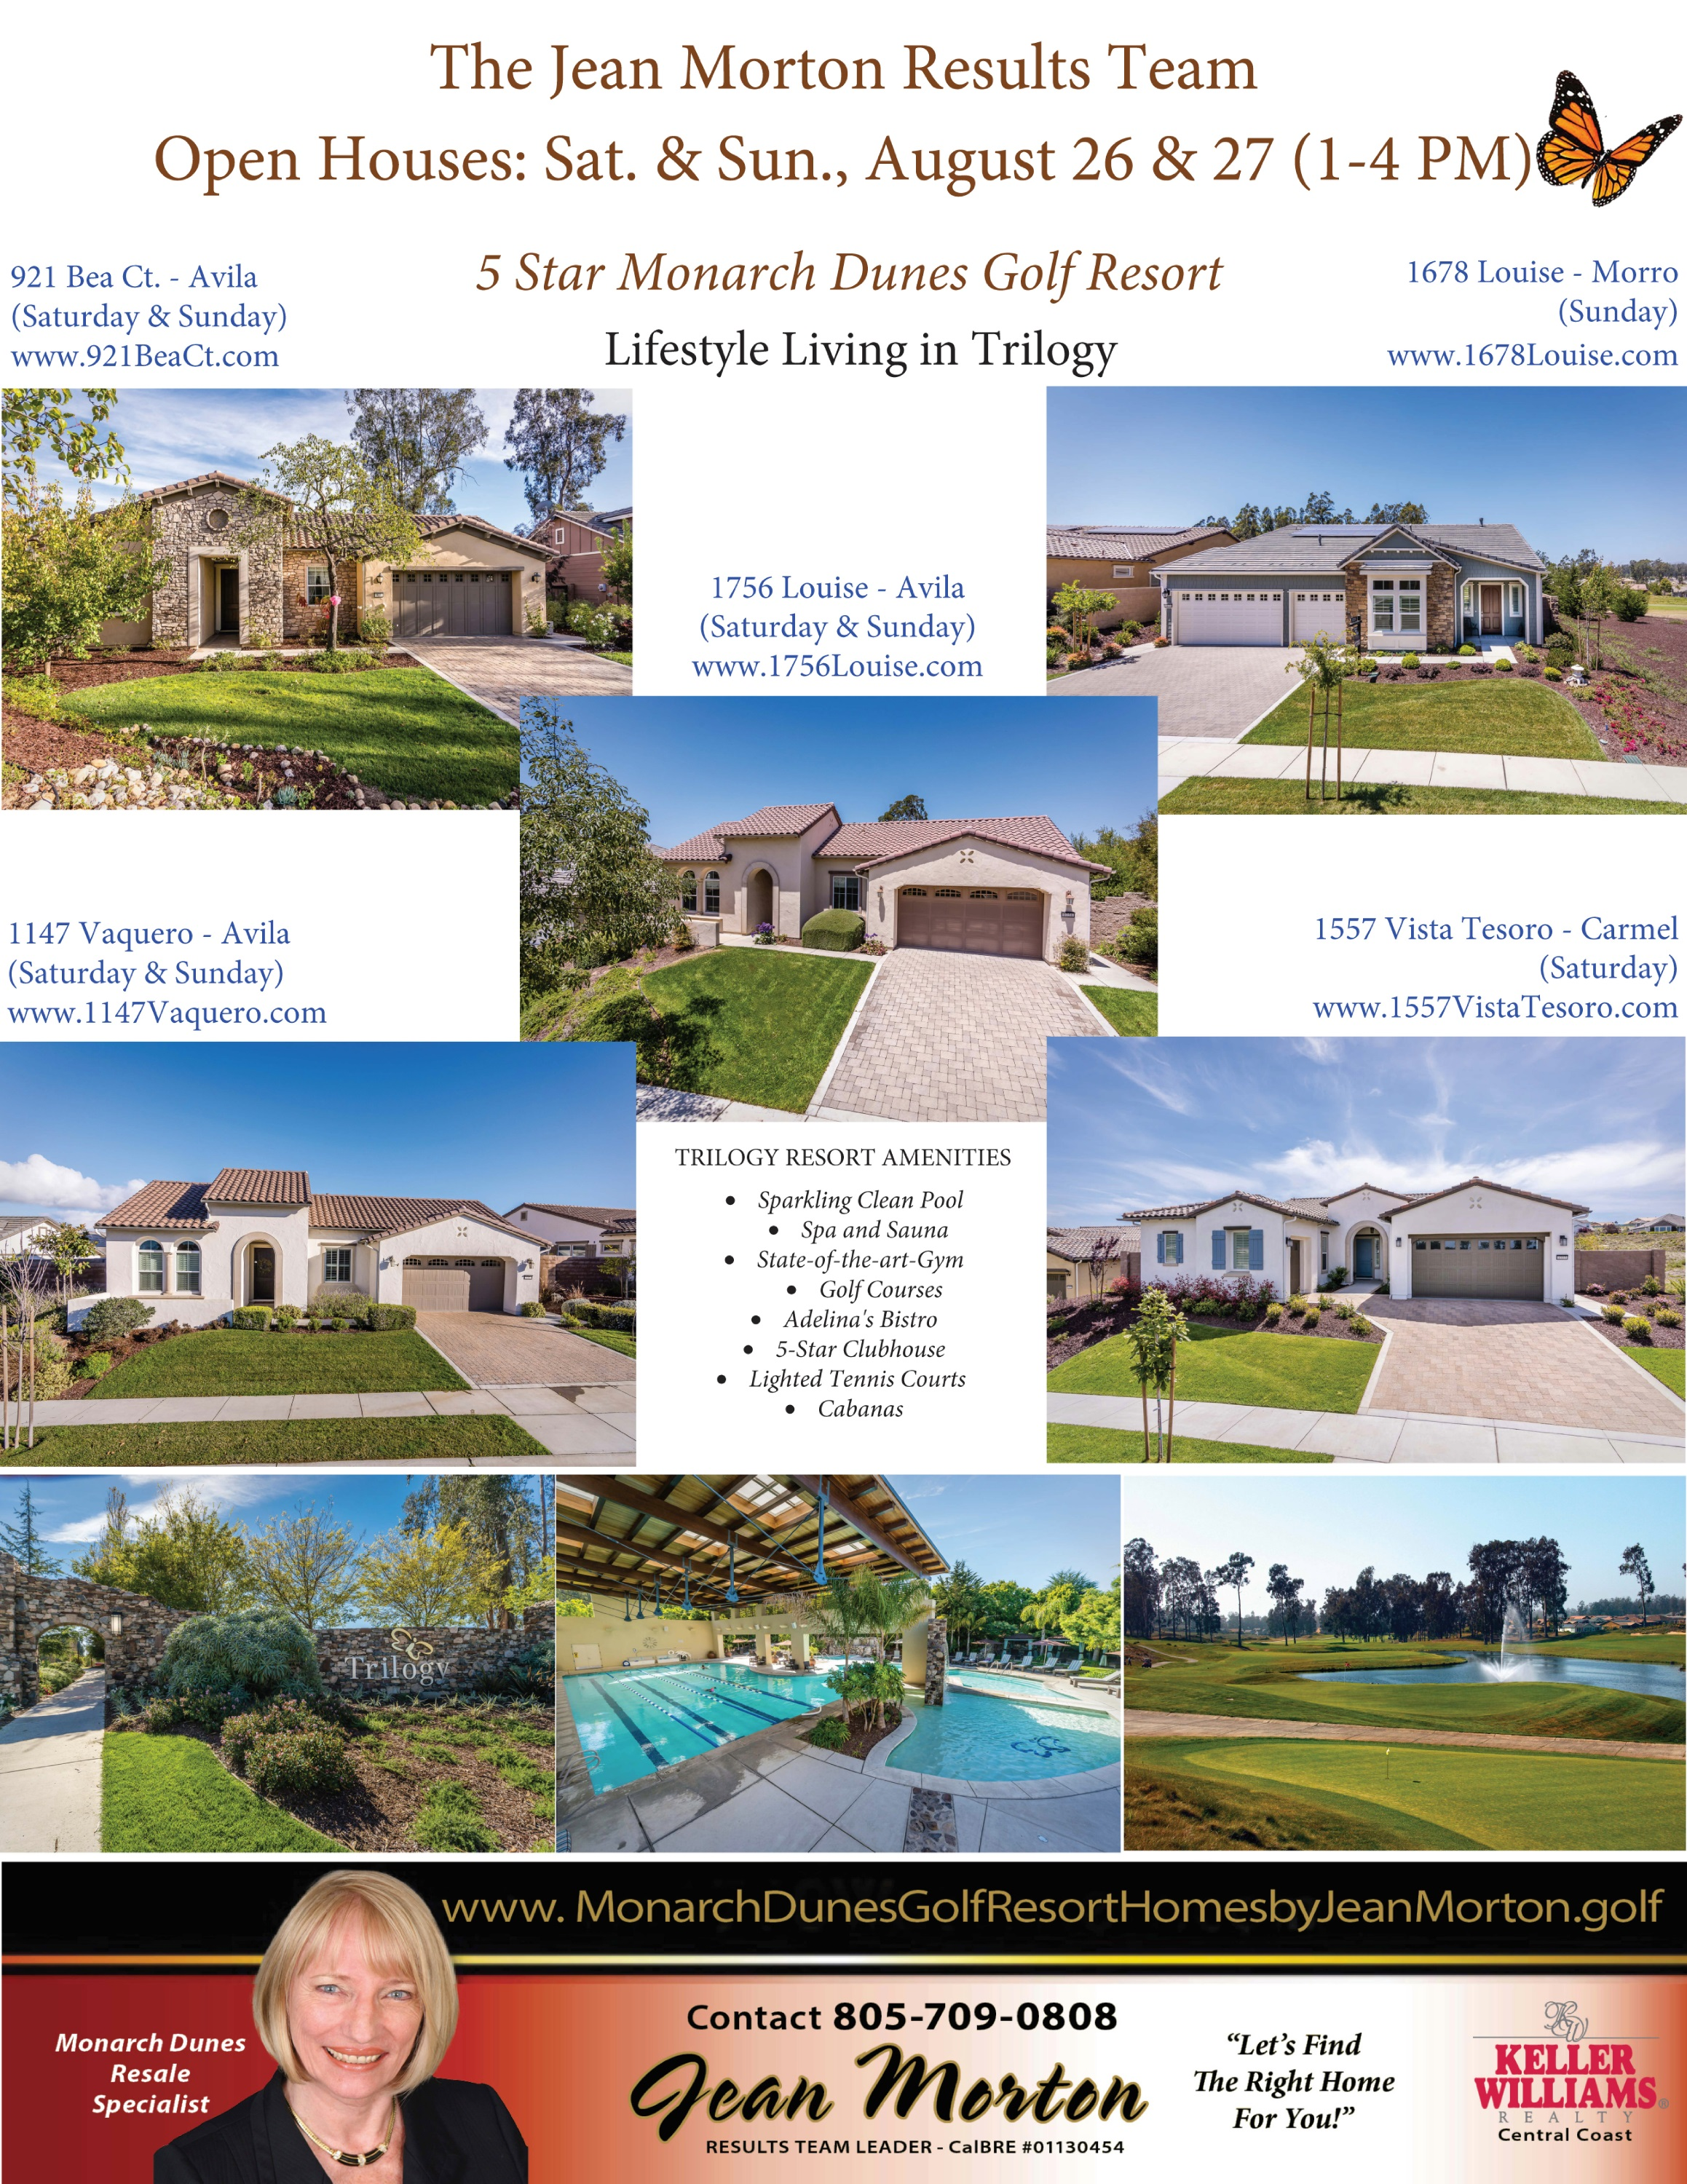 Open Houses August 26 - 27